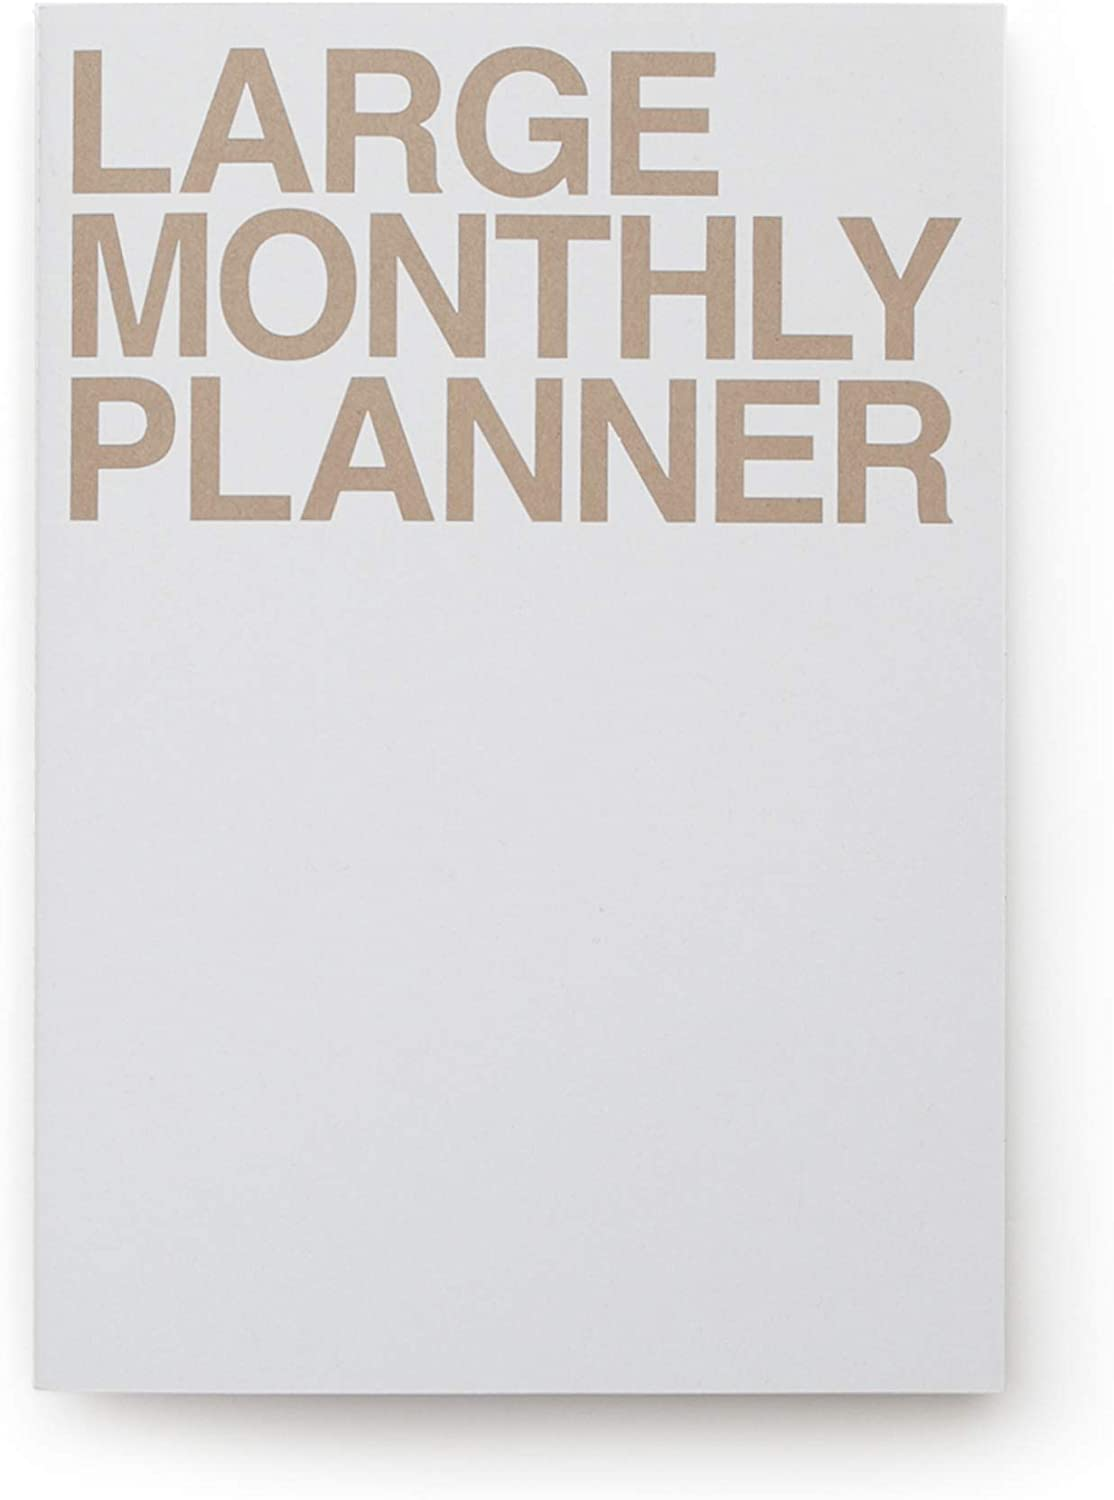 Don't miss the campaign JSTORY Large Monthly Planner Lays Undated New Free Shipping Flat Flexib Round Year